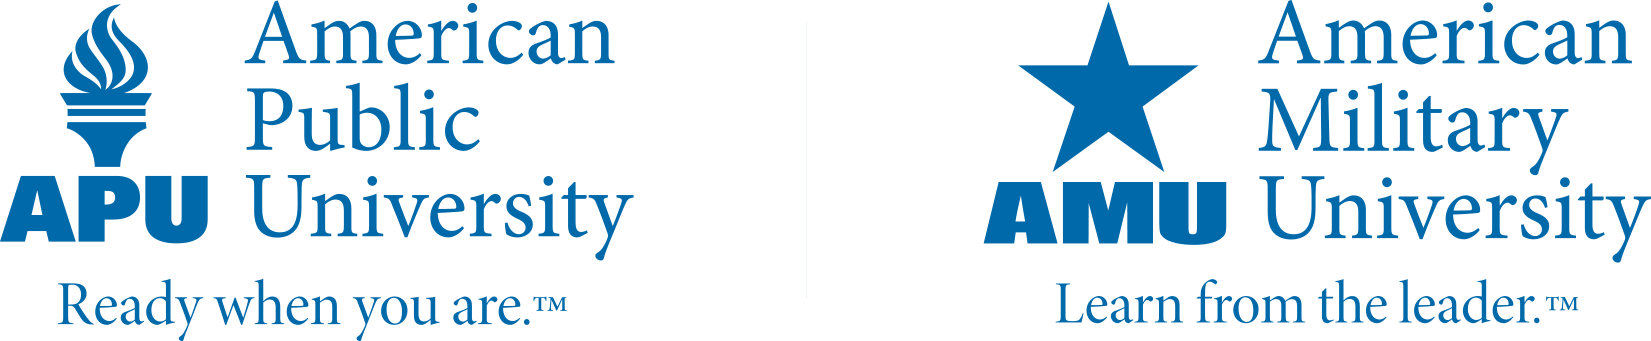 This is a blue colored image of the APUS logo, with a torch, and the AMU logo, which is a star